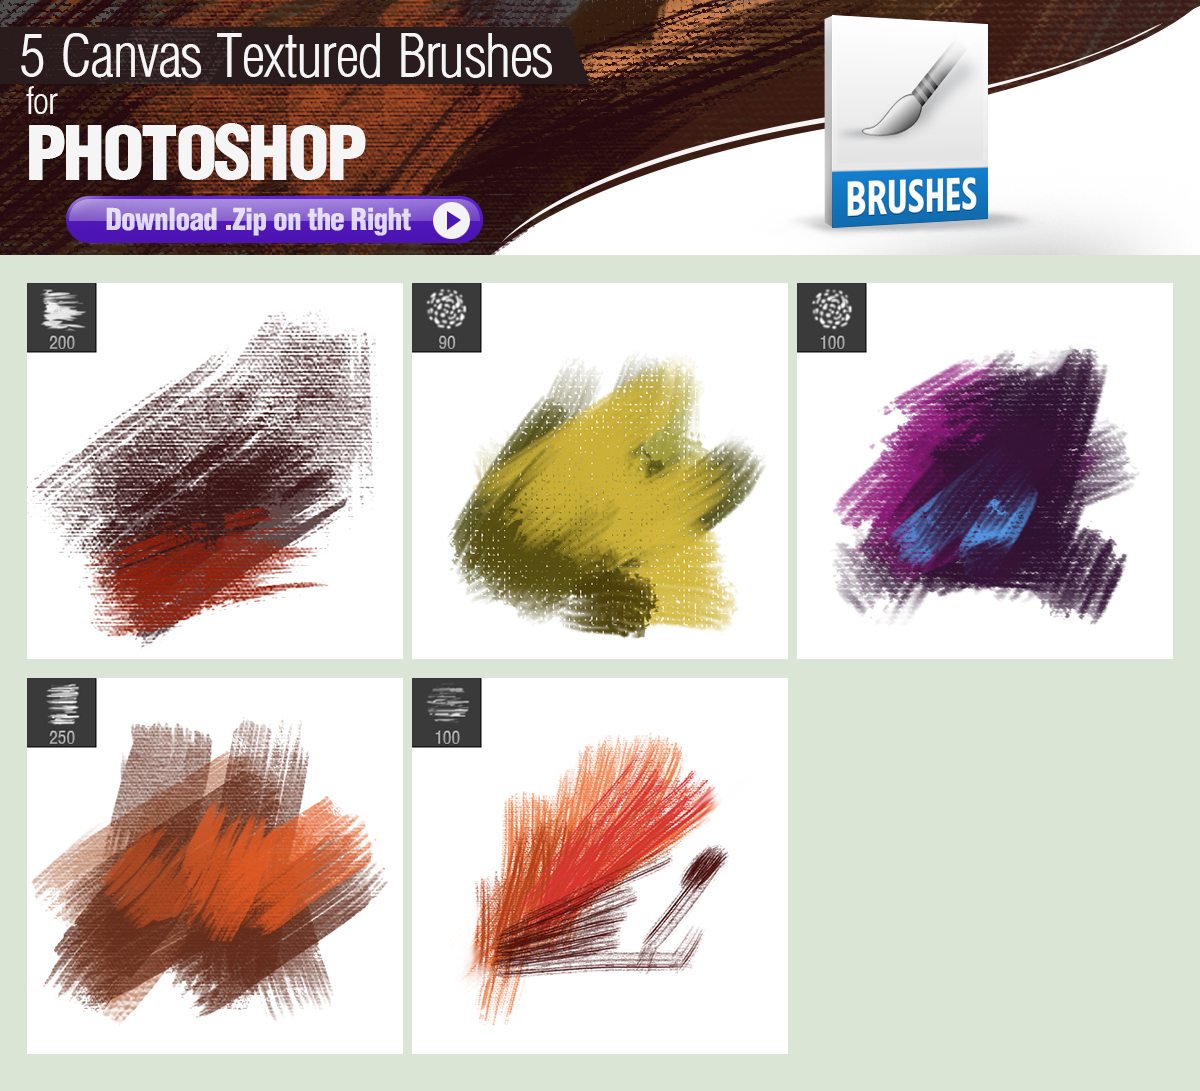 Textured Painting Brushes Photoshop